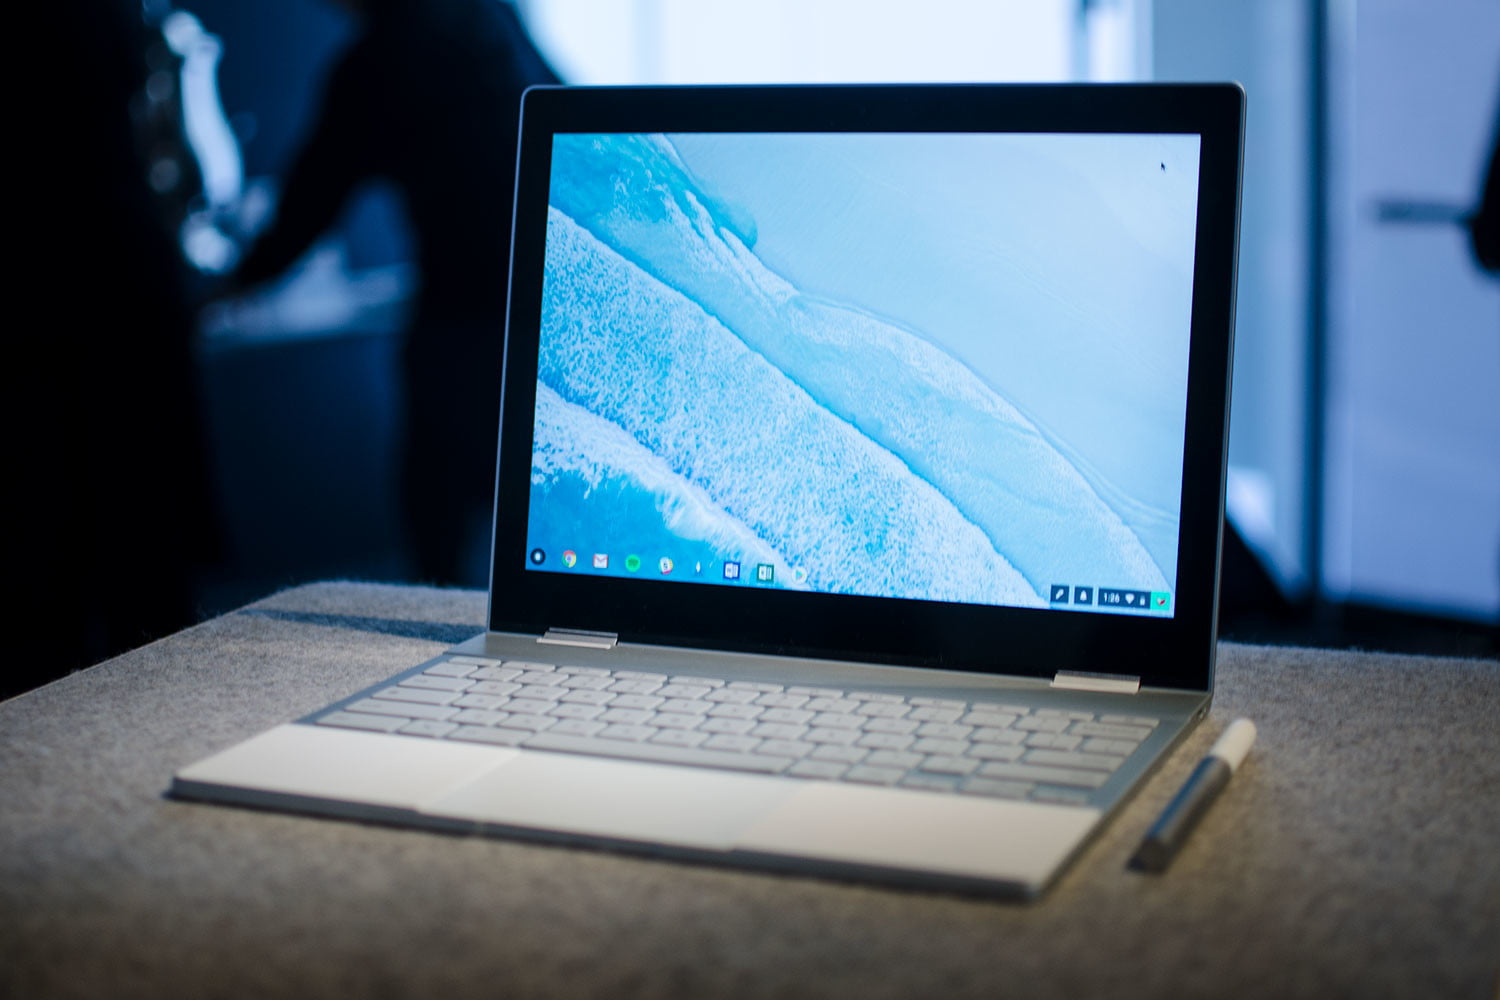 Software Limits May Prevent Linux From Running on Older Chromebooks